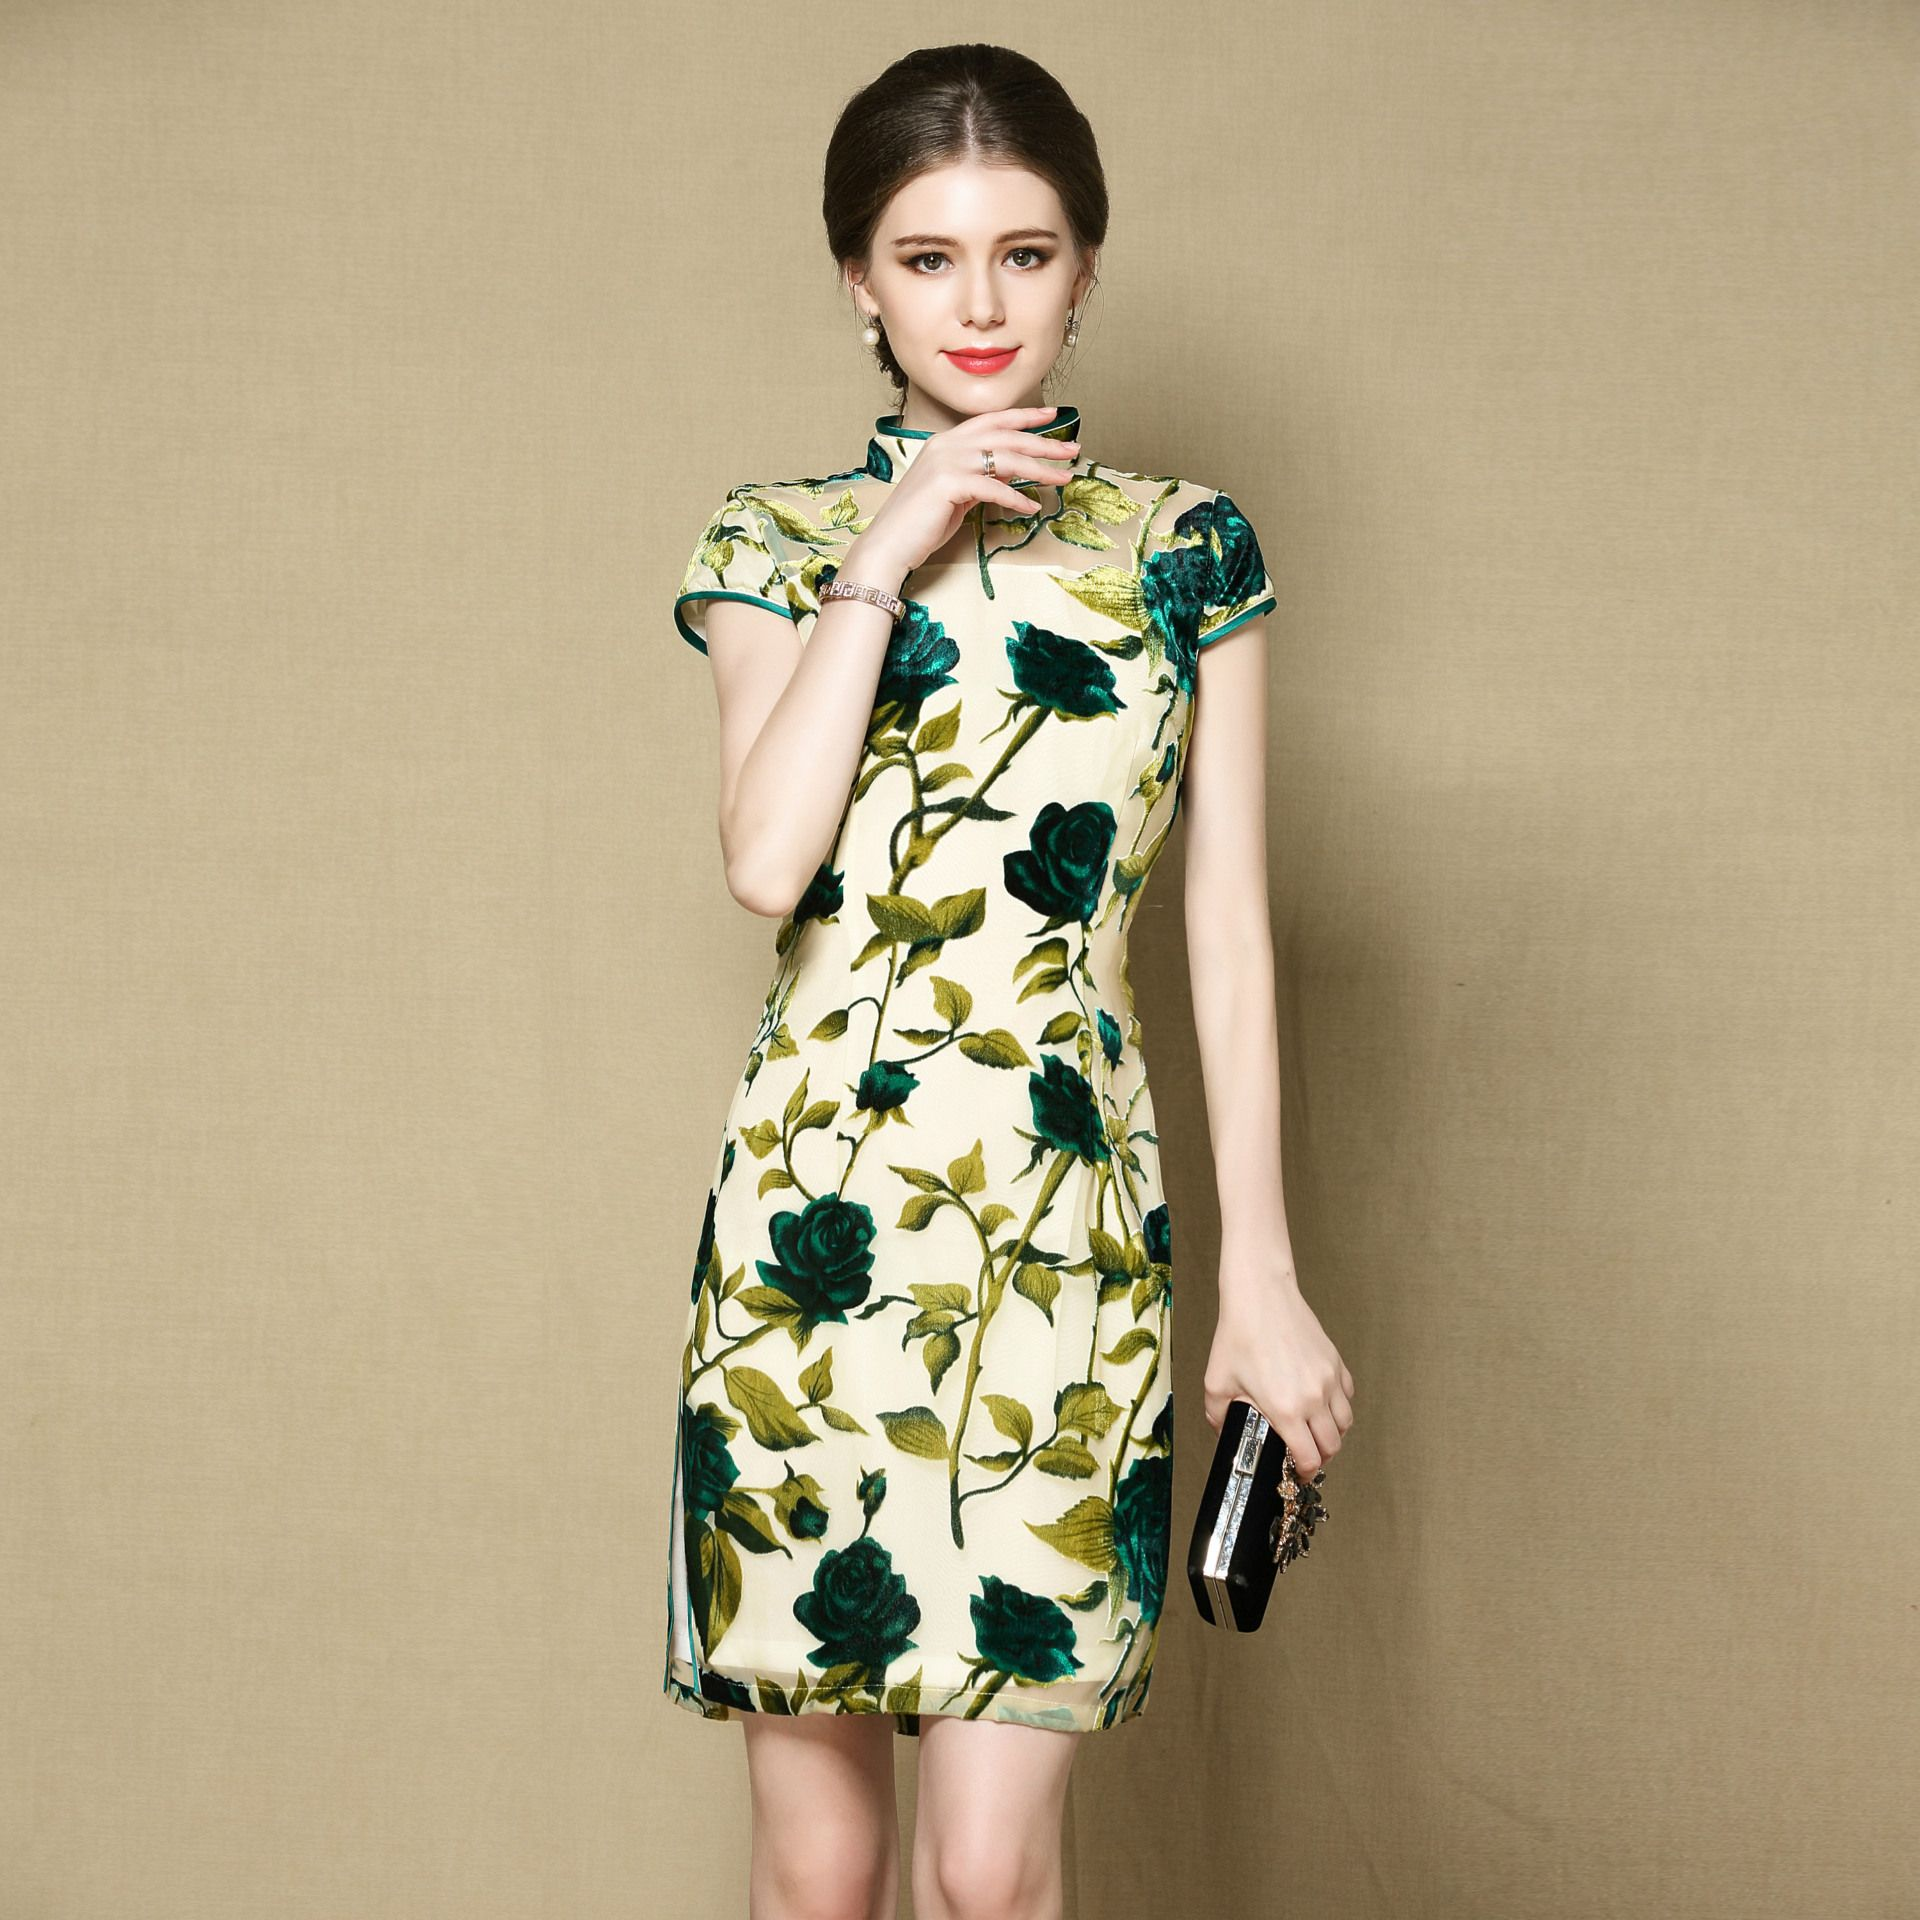 Rose Flowers Flocked Velvet Qipao Cheongsam Dress - Green